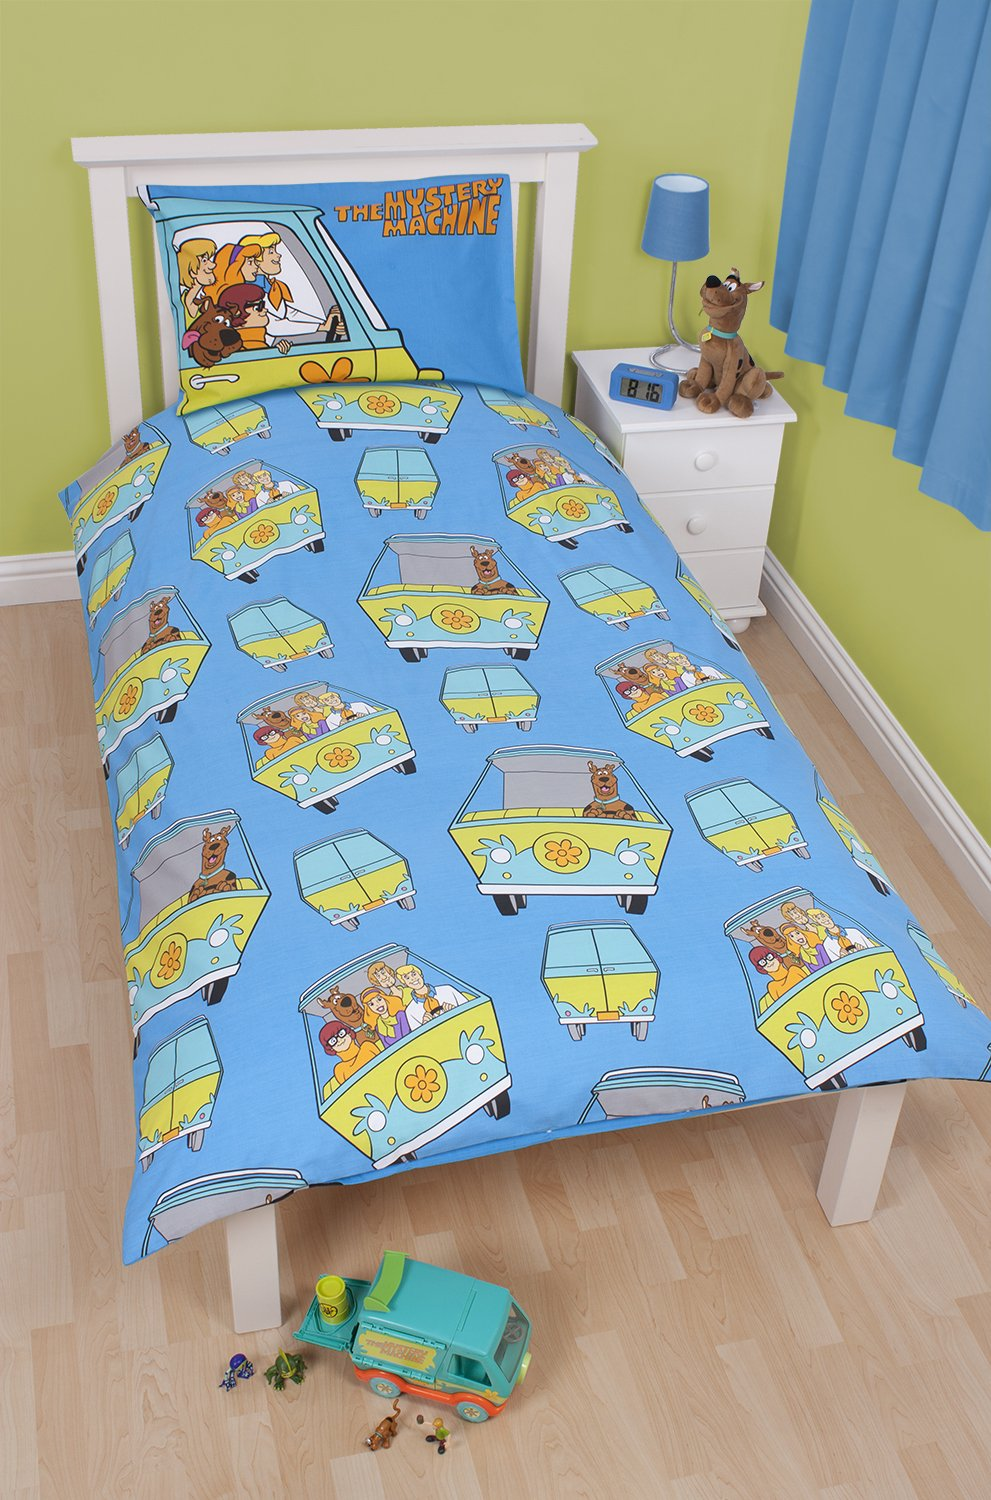 Scooby Doo Bedroom Accessories